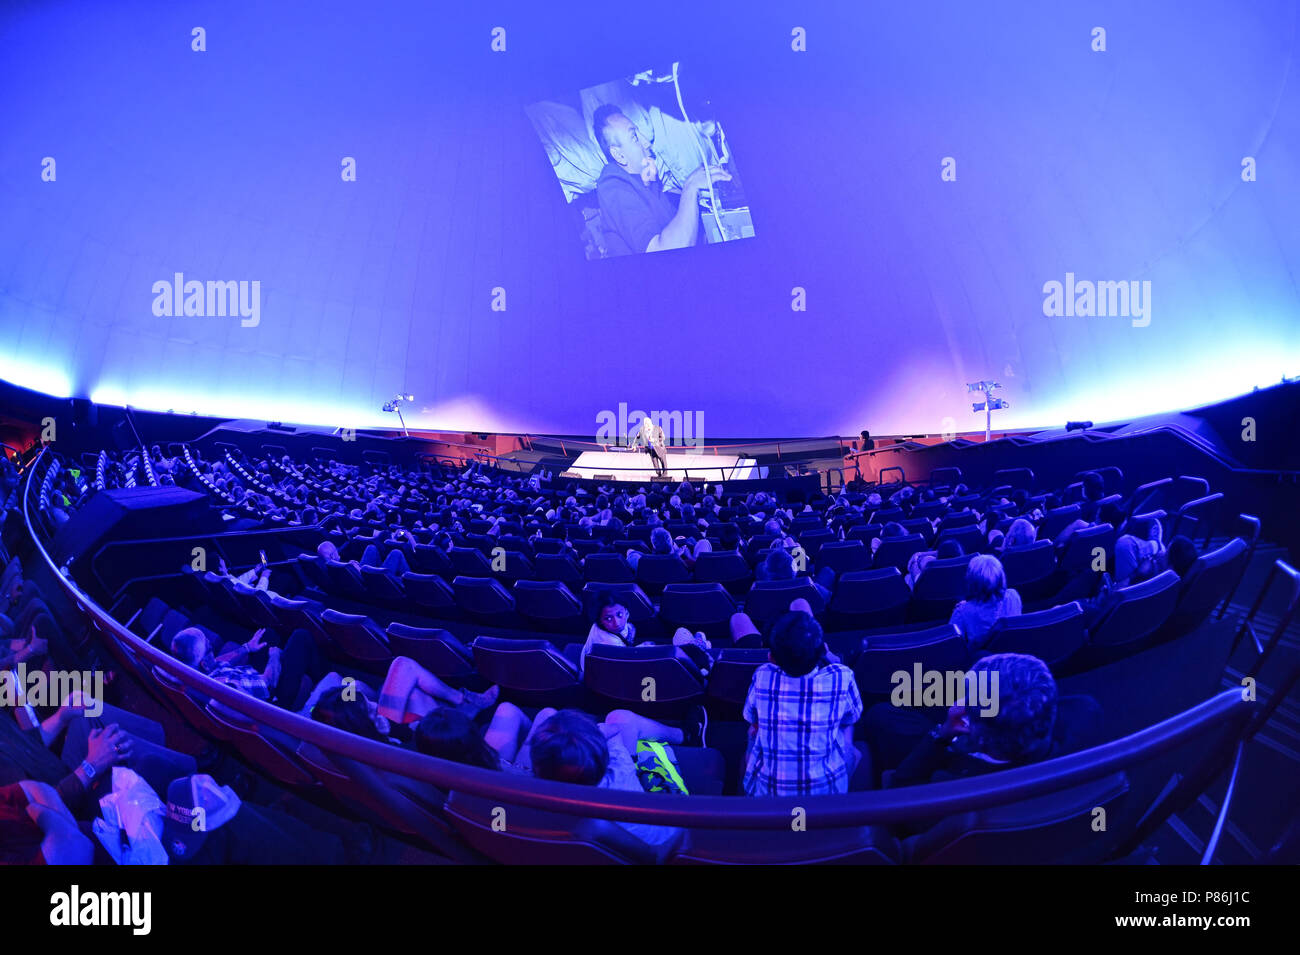 Garden City, New York, USA. 21st June, 2018. NASA space shuttle astronaut MIKE MASSIMINO, a Long Island native, is on stage giving free lecture to full house audience in the JetBlue Sky Theater Planetarium at the Cradle of Aviation Museum. Photo projected on planetatium dome wall was taken when Massimino was sending the first ever tweet from space. Credit: Ann Parry/ZUMA Wire/Alamy Live News - Stock Image